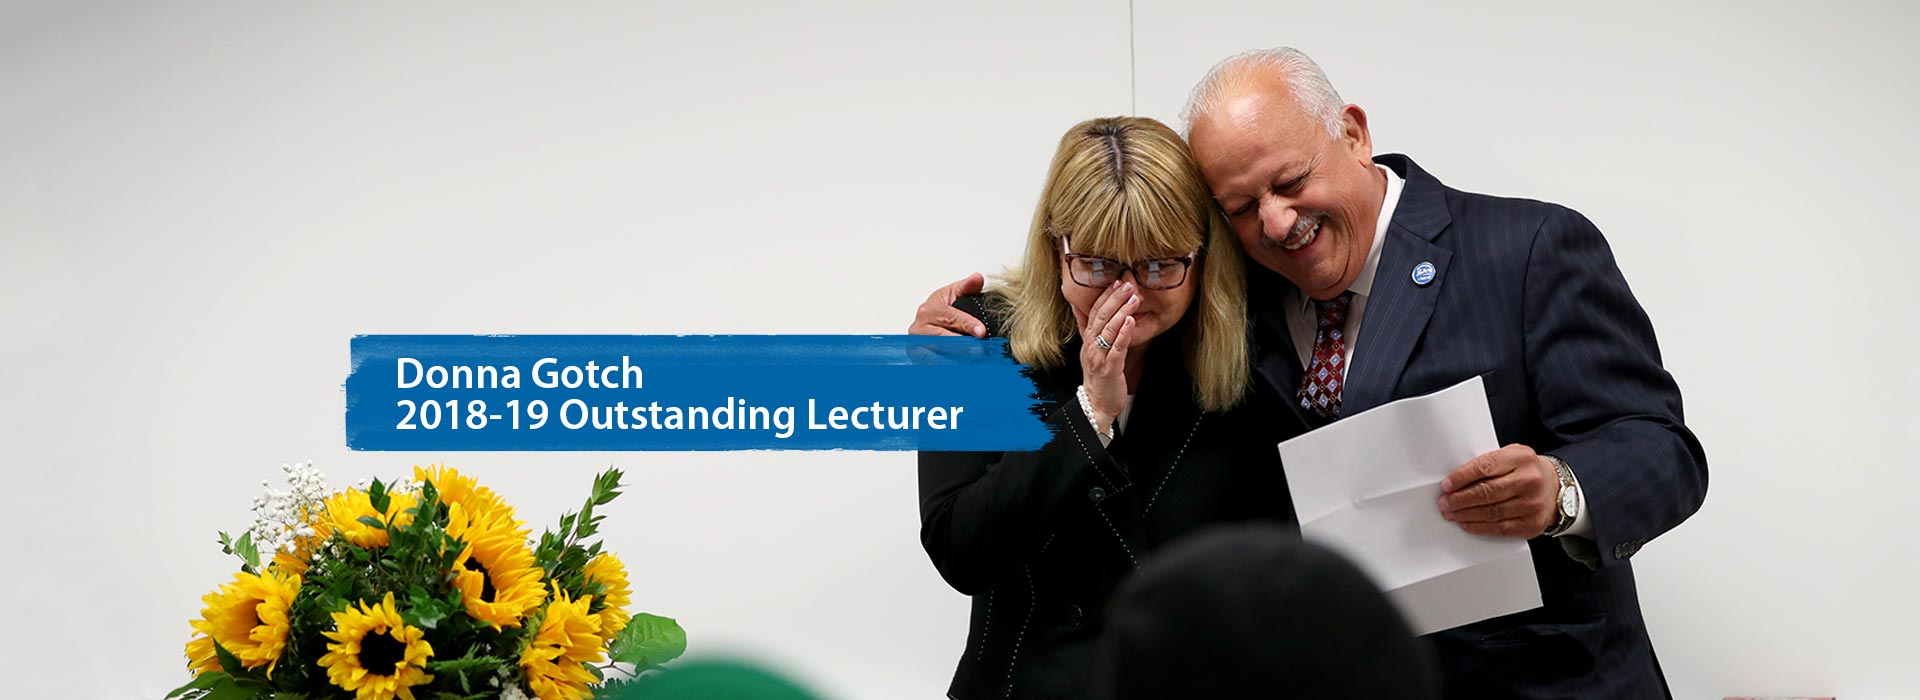 Communication studies instructor surprised with Outstanding Lecturer Award